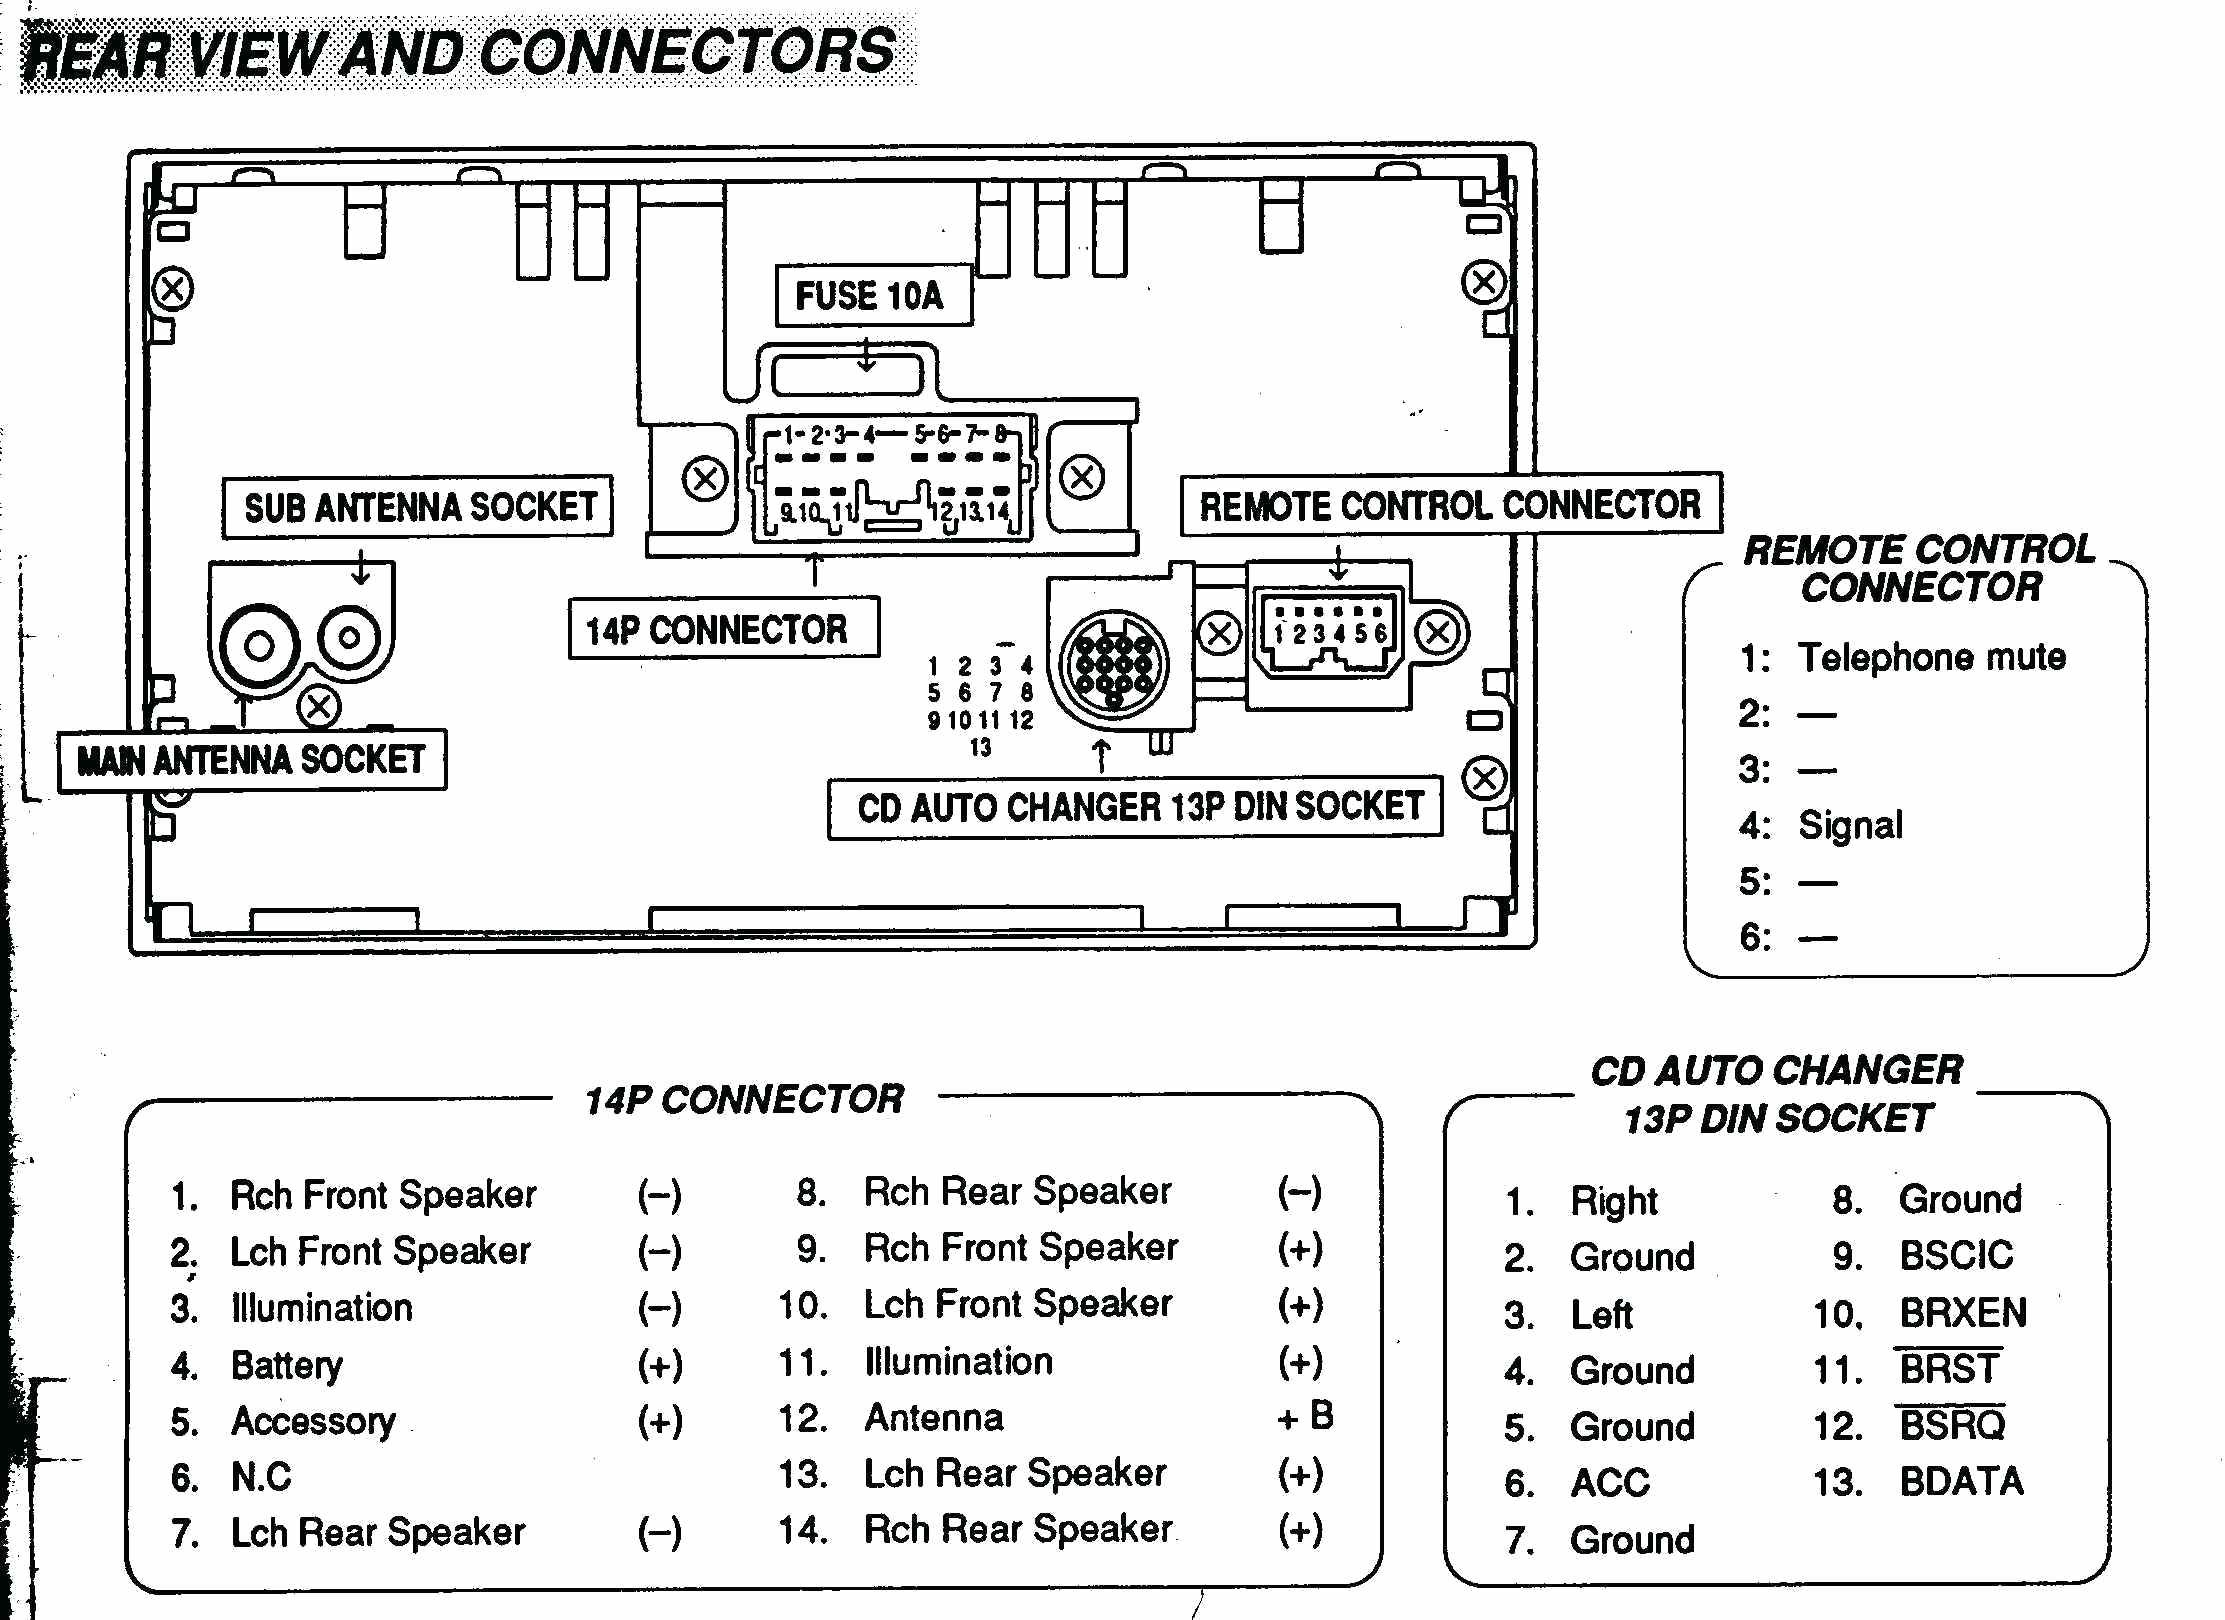 2001 silverado radio wiring diagram 2001 chevy suburban radio wiring diagram | free wiring diagram